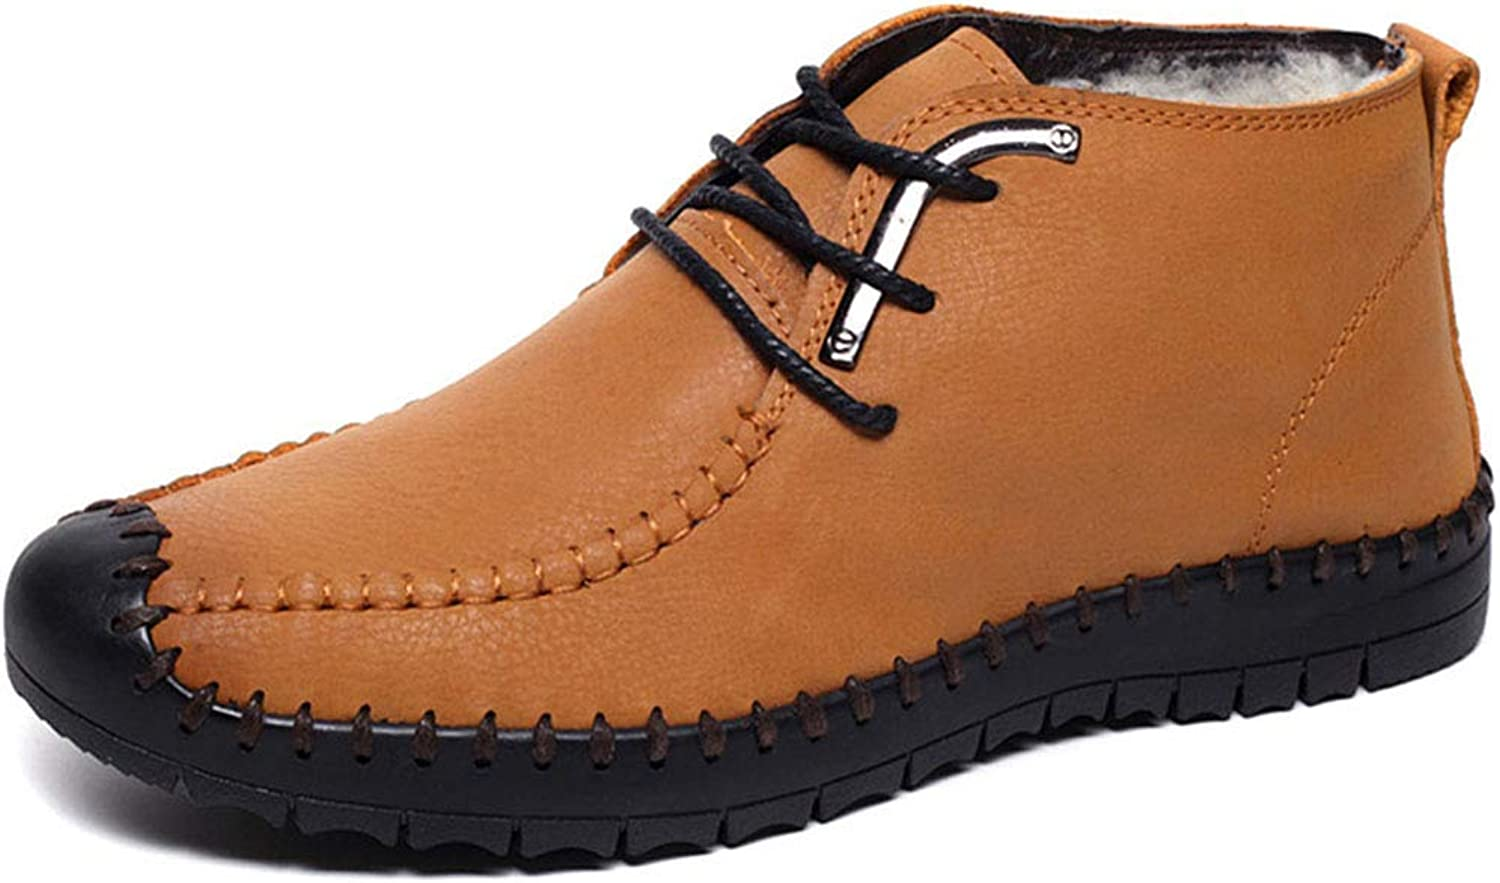 Men's Fashion shoes New Keep Warm Martin Boots Leather Lace-up Booties Outdoor Hiking shoes (color   C, Size   43)